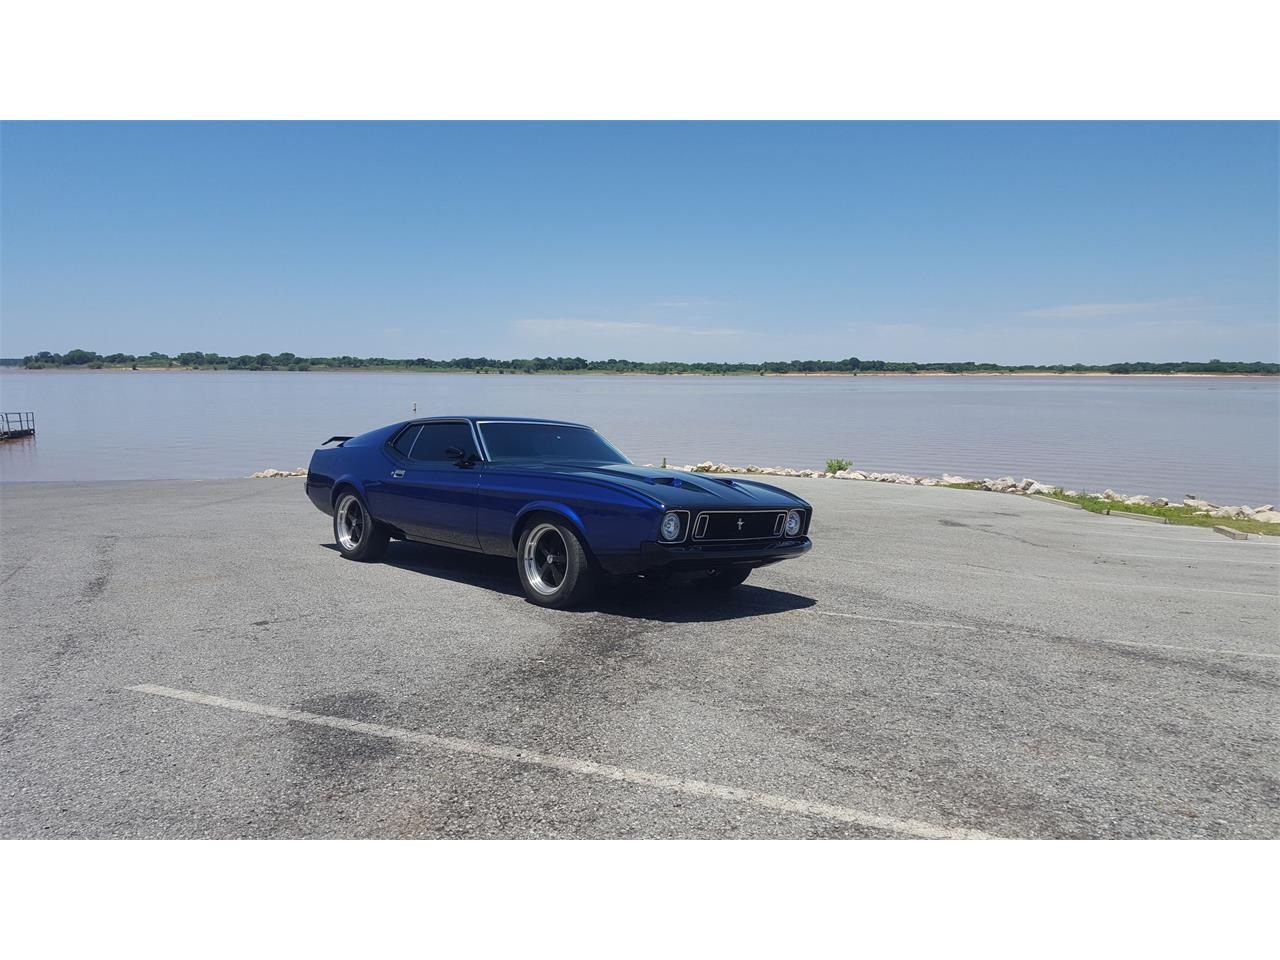 Large Picture of 1973 Ford Mustang Mach 1 located in Texas - LBYV